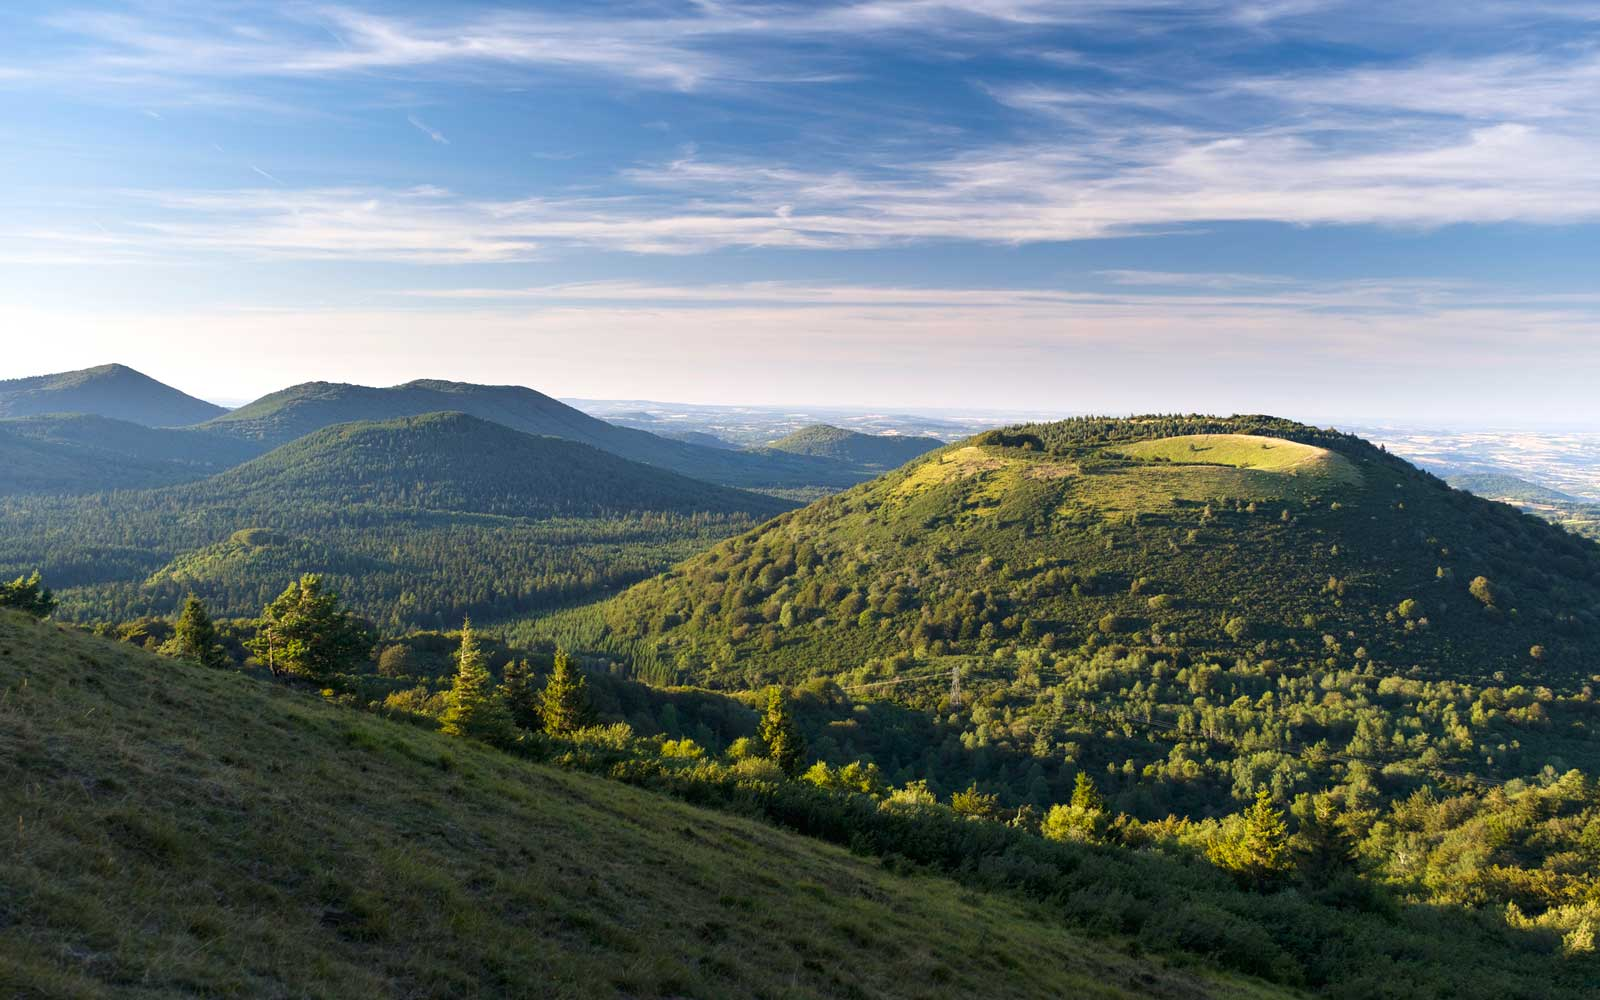 Regional Nature Park of the Volcanoes of Auvergne.  An elevated view of the Chaîne des Puys viewed from near the summit of Puy de Pariou.